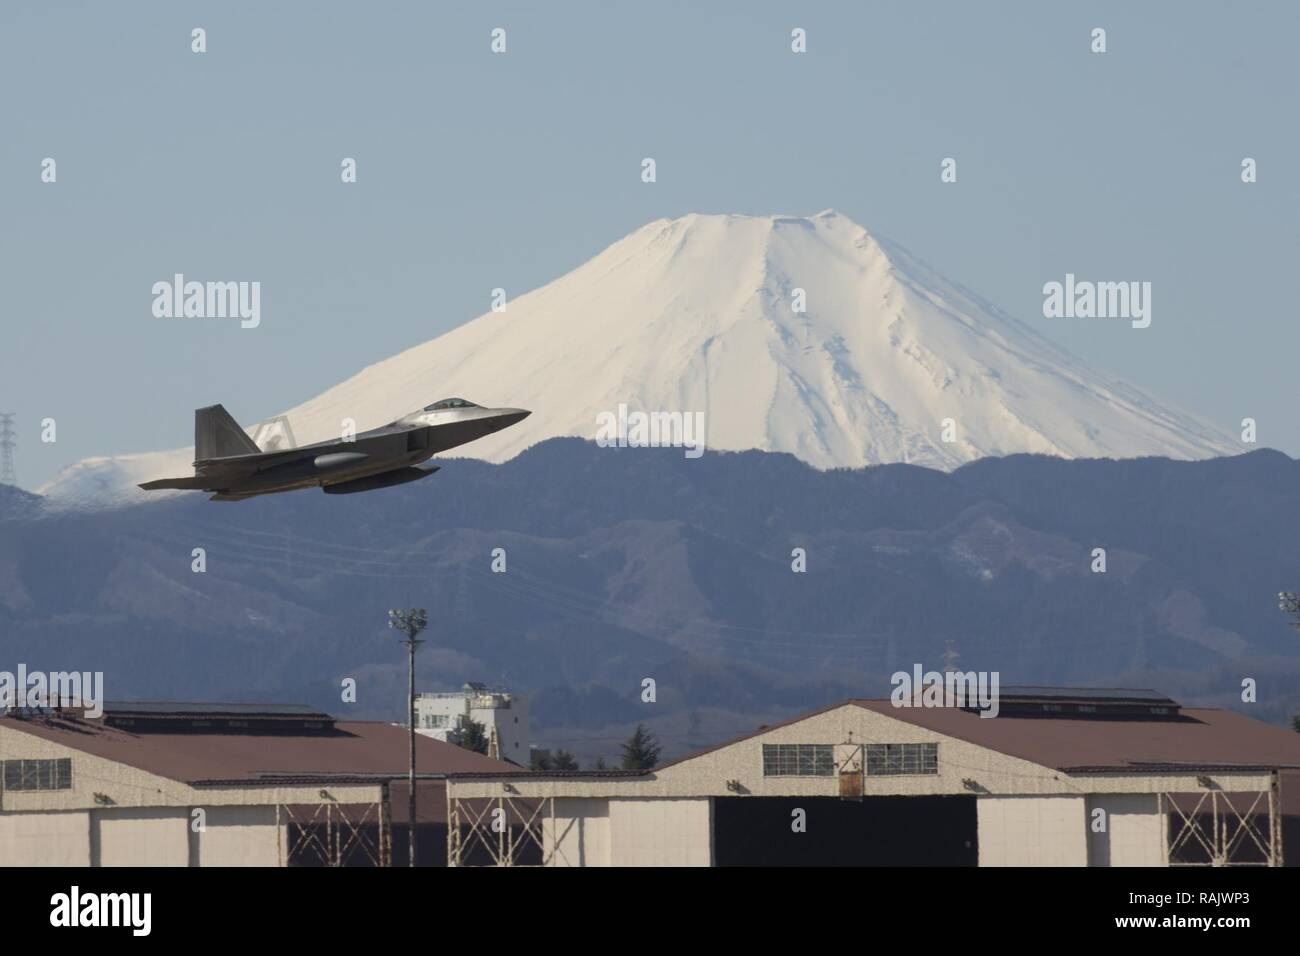 A U.S. Air Force F-22 Raptor from the 90th Fighter Squadron at Joint Base Elmendorf-Richardson, takes off at Yokota Air Base, Japan, Feb. 13, 2017. The F-22 Raptors stopped at Yokota AB before traveling on to Royal Australian Air Force Base, Tindal. As the Air Force's Western Pacific airlift hub, Yokota supports transient aircraft as they conduct mission throughout the Indo-Asia Pacific Region. - Stock Image